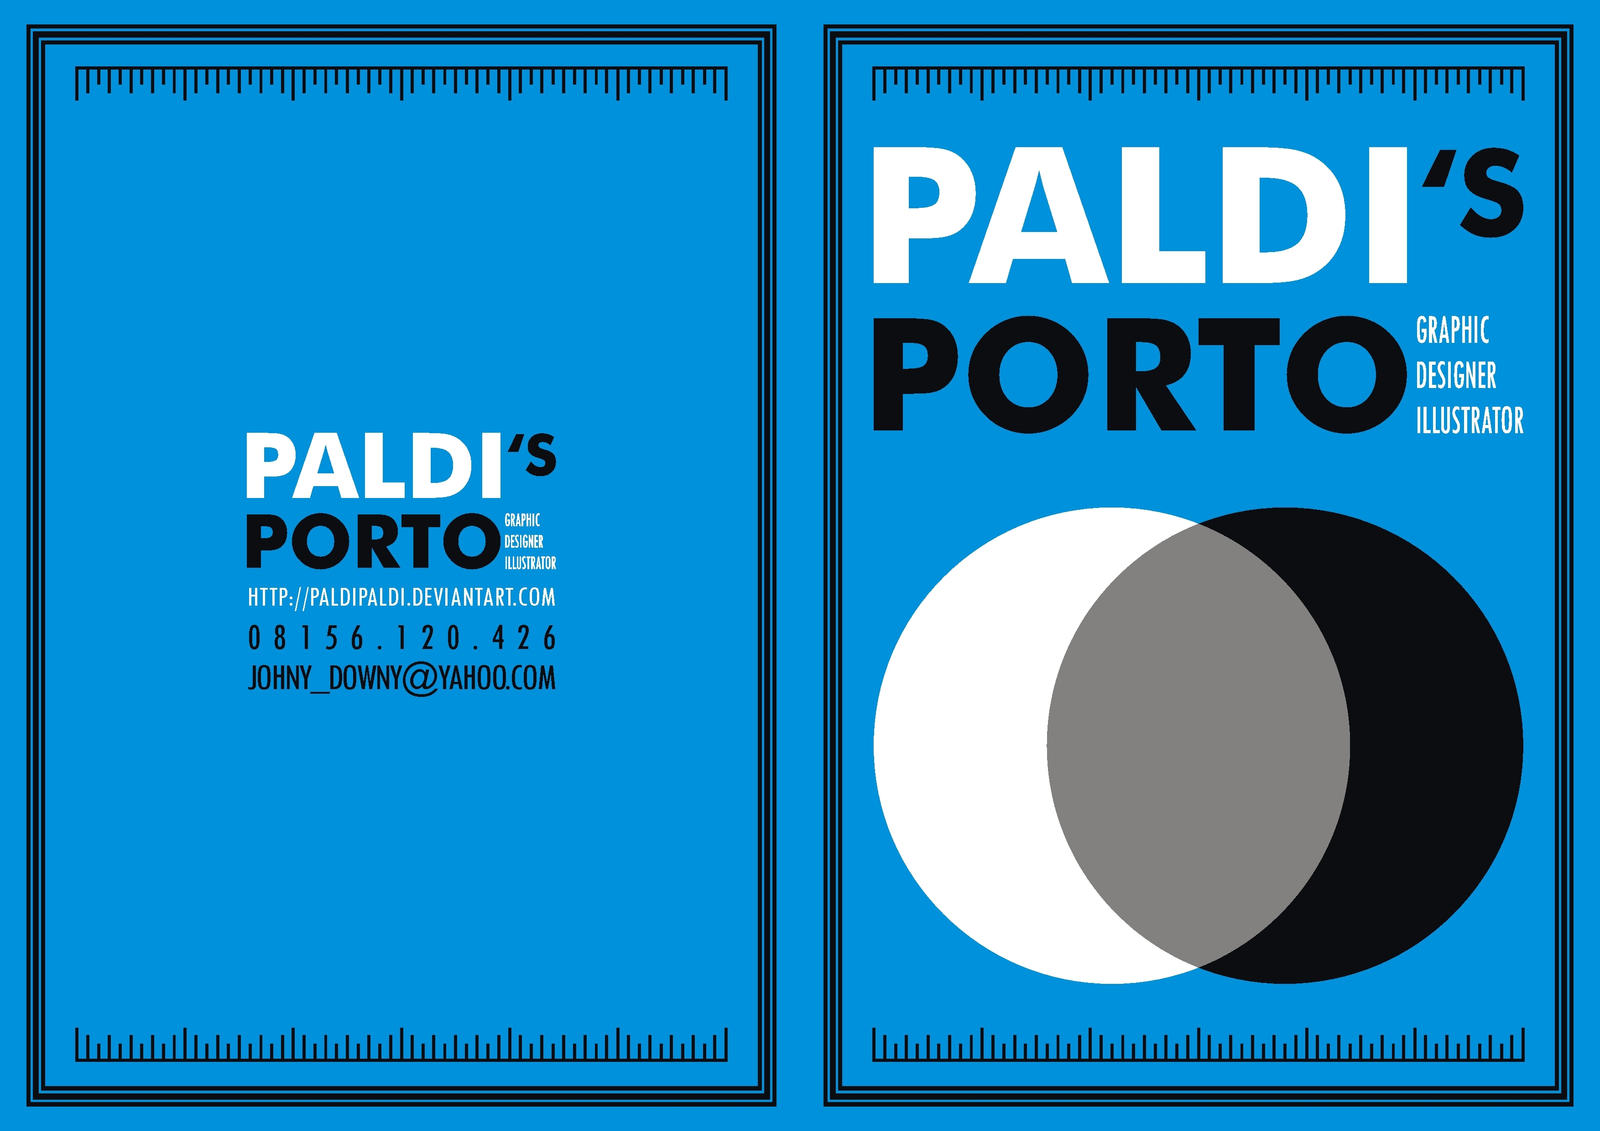 the cover of PALDI's porto by paldipaldi